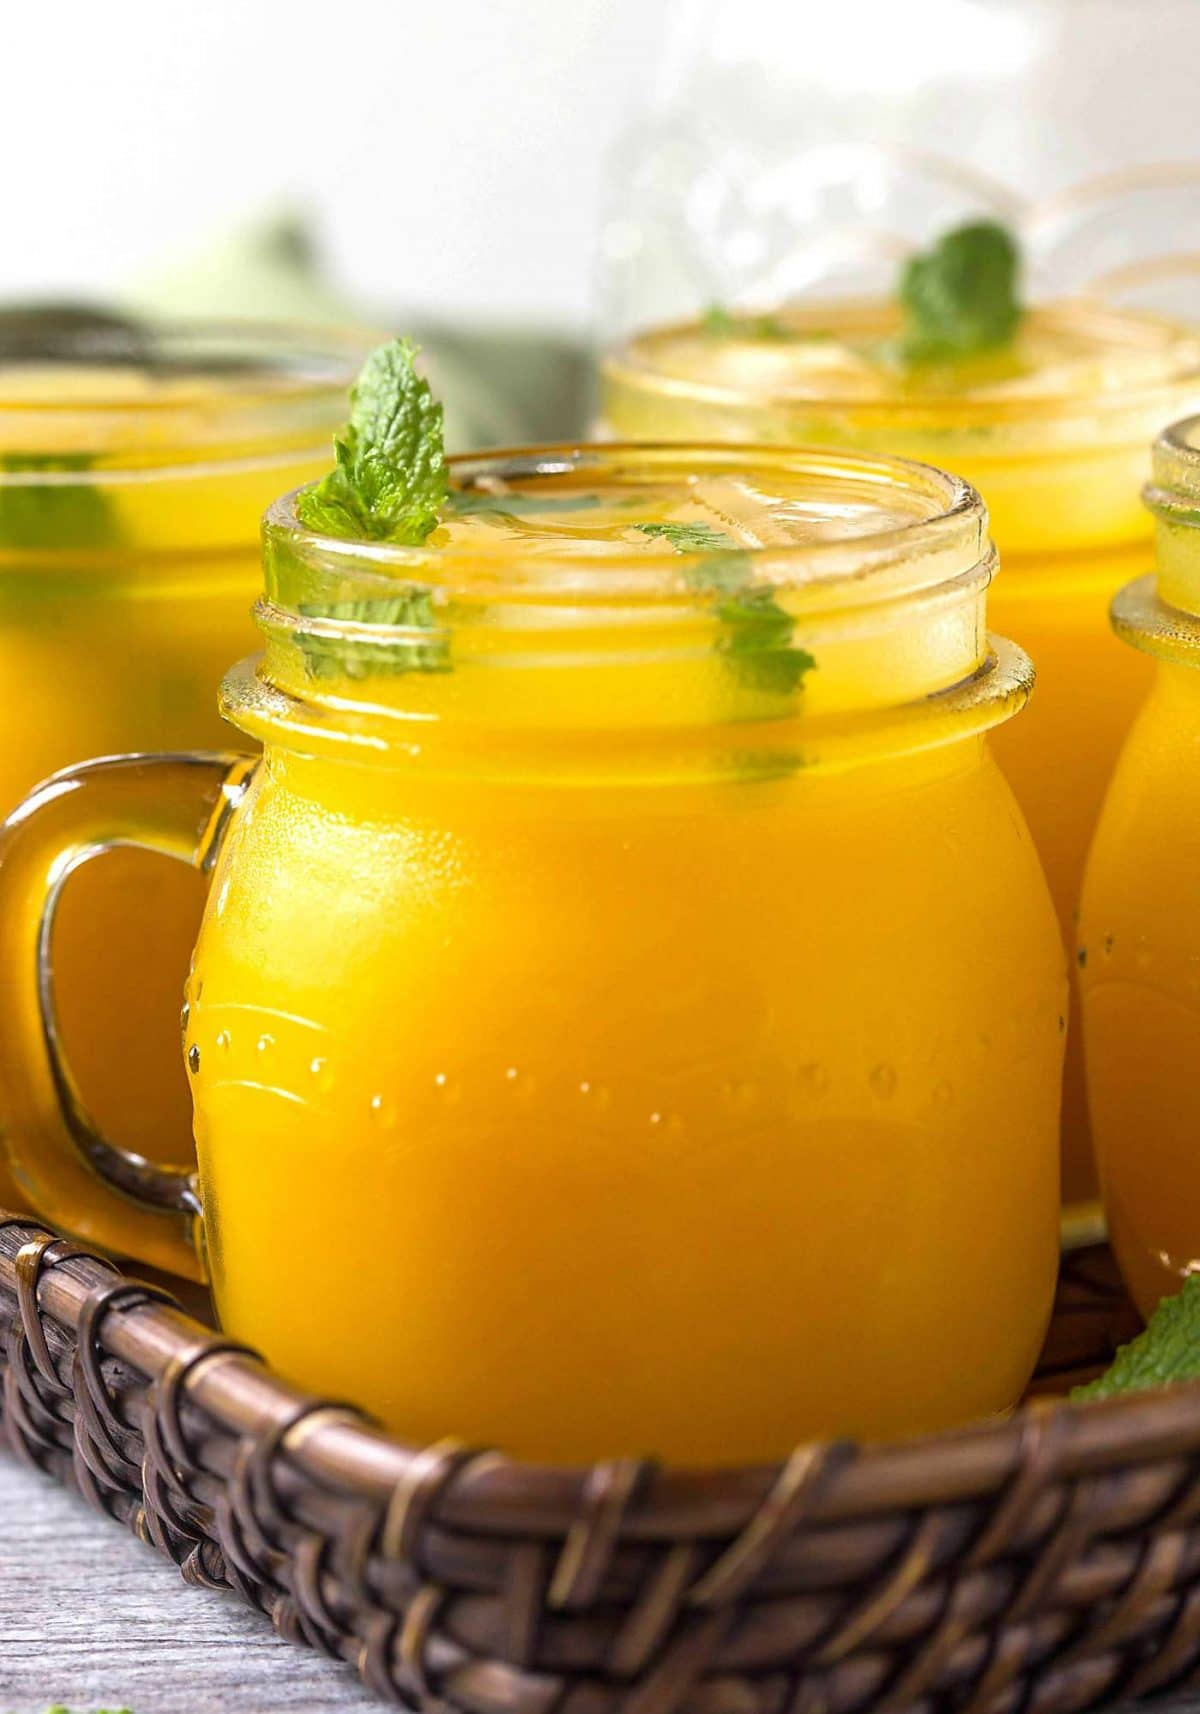 Refreshing mango lemonade to enjoy hot summer days. Prepared using fresh zesty lemon juice, honey, & mango pulp. Healthy, delicious & naturally sweetened fresh lemonade